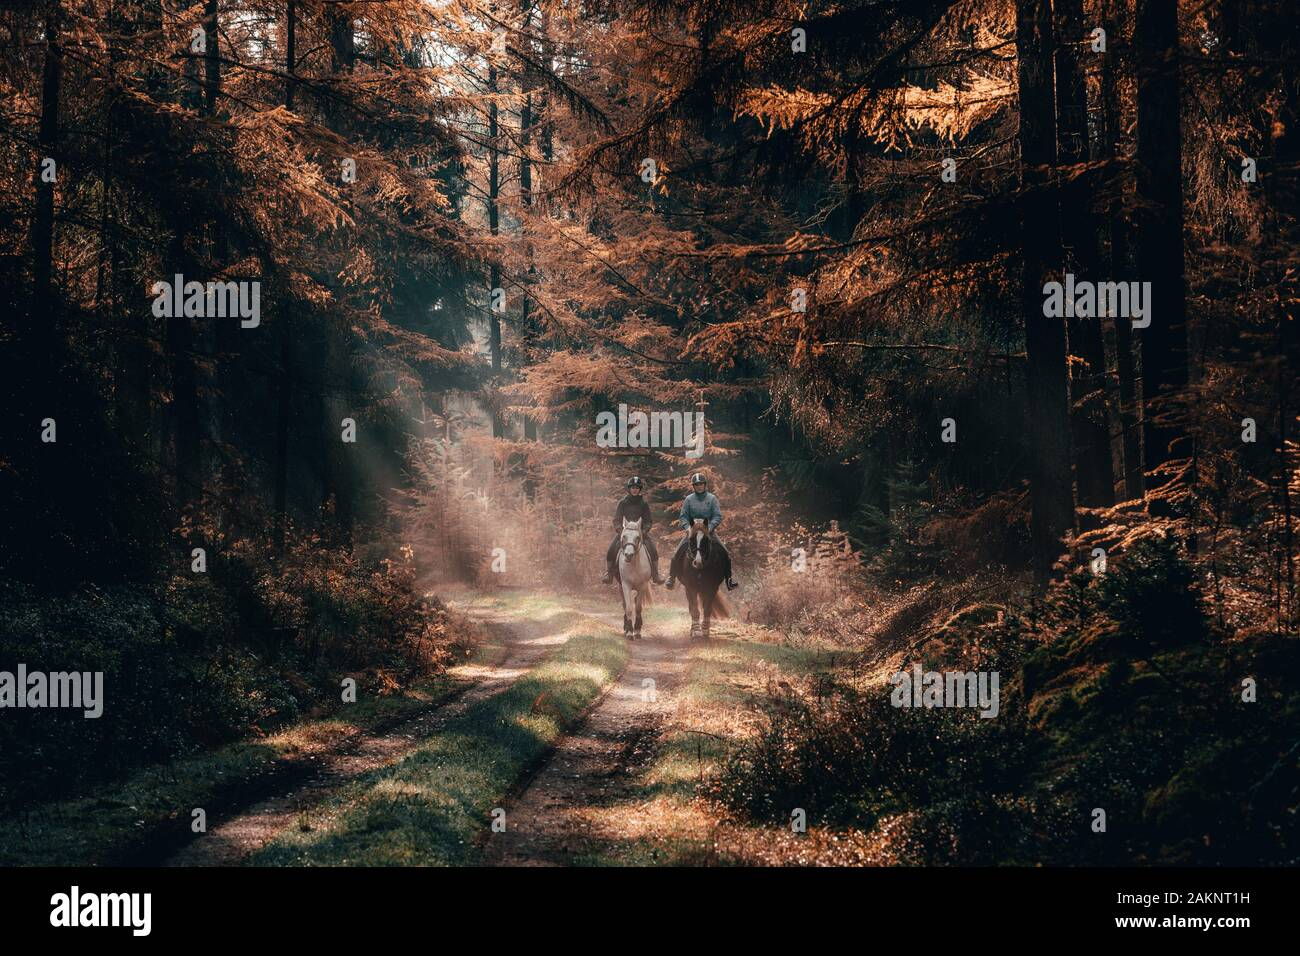 Luneberg, Germany - Nov 10, 2019: Two female esquestrians ride horses in the Heide forests woodand with autumn golden sunlight cast over them Stock Photo